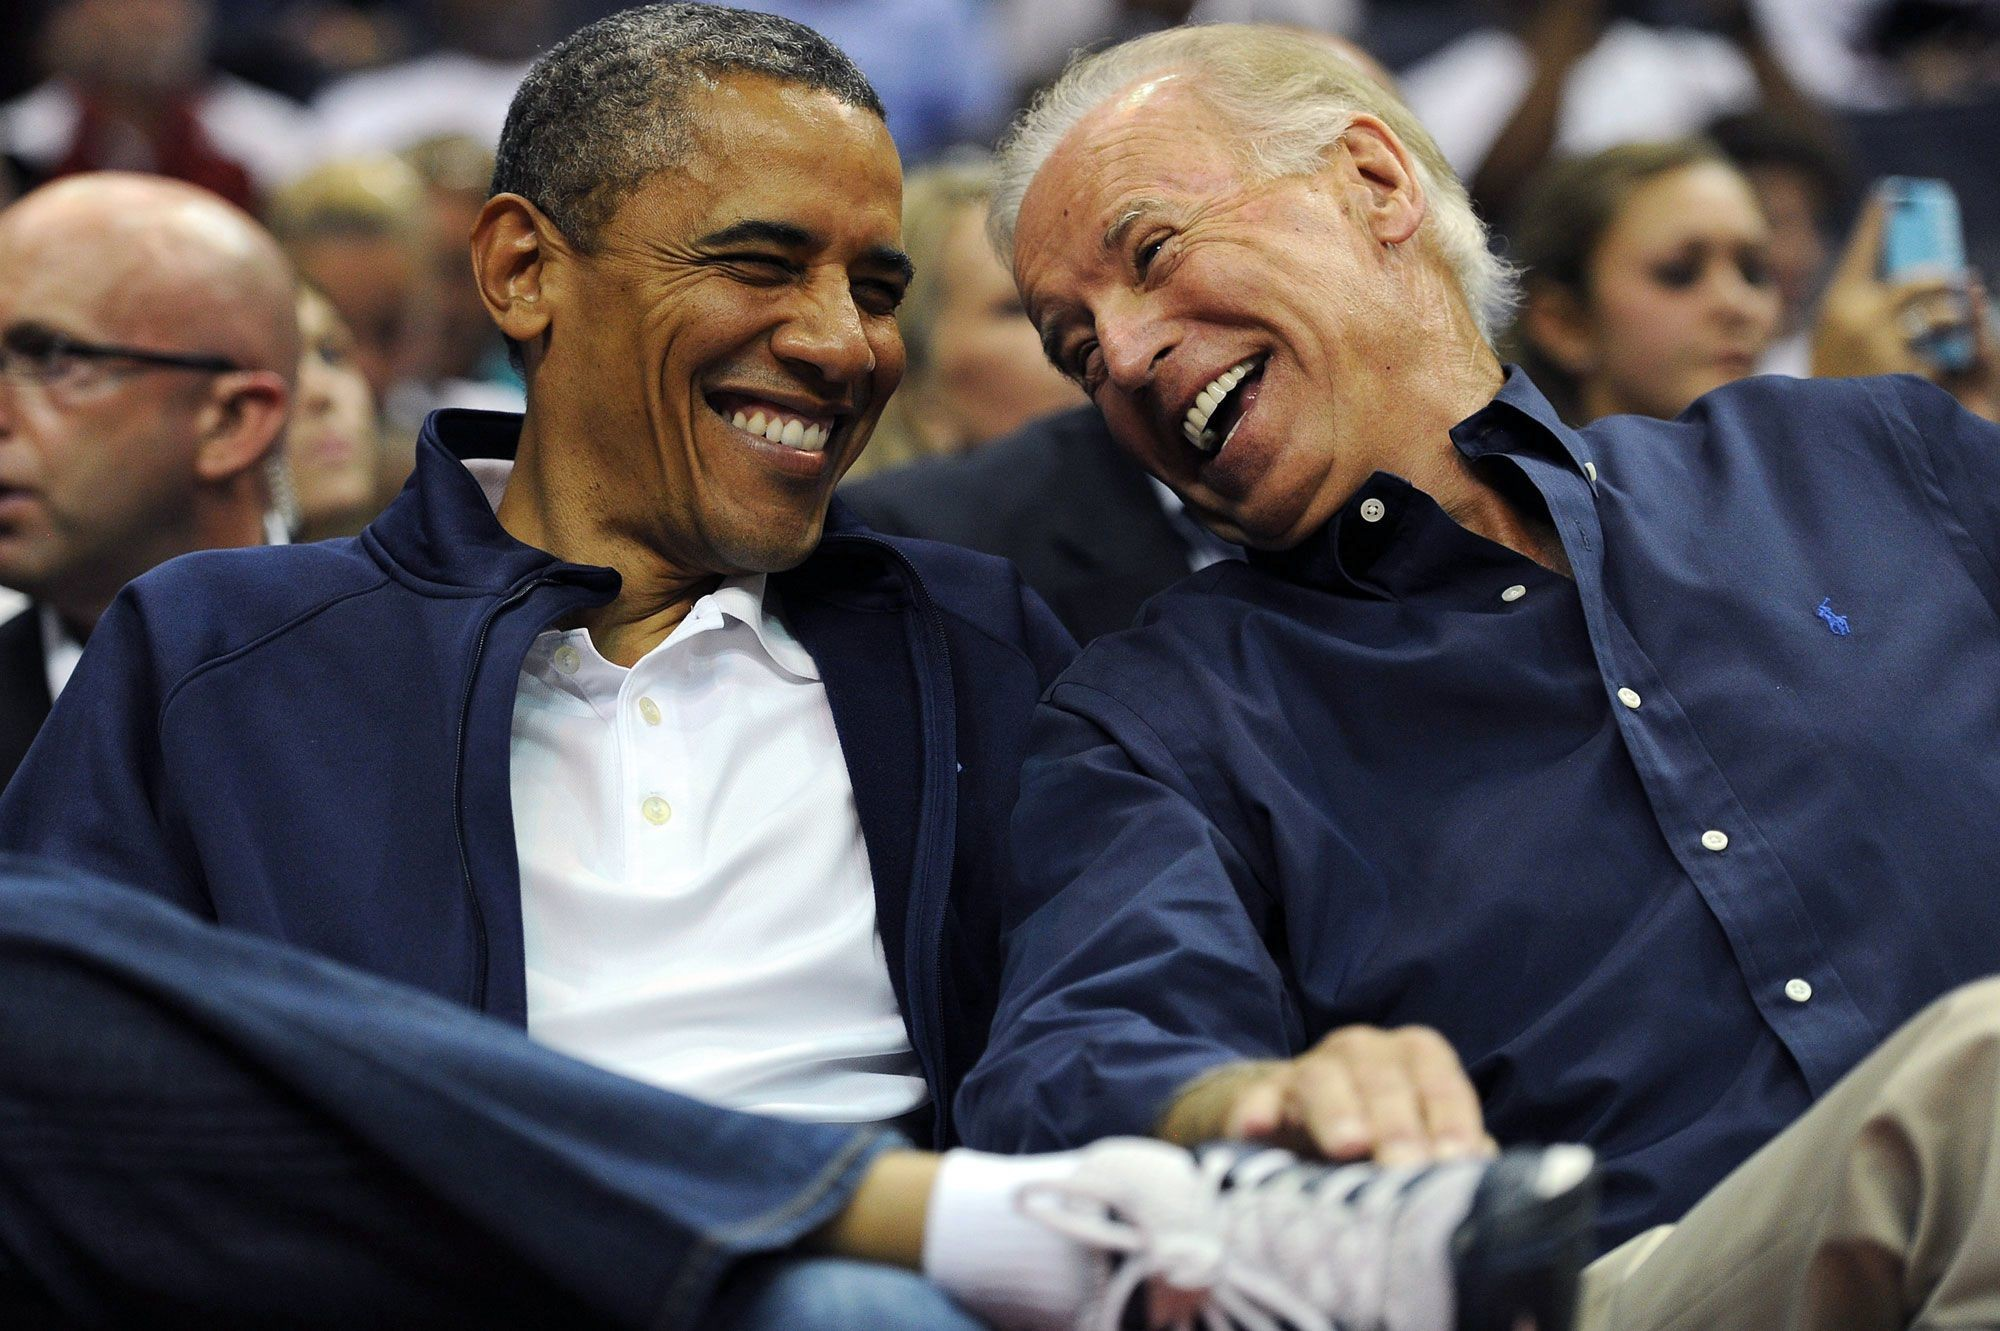 2000x1331 President Obama and Joe Biden's Epic Bromance in 21 Photos